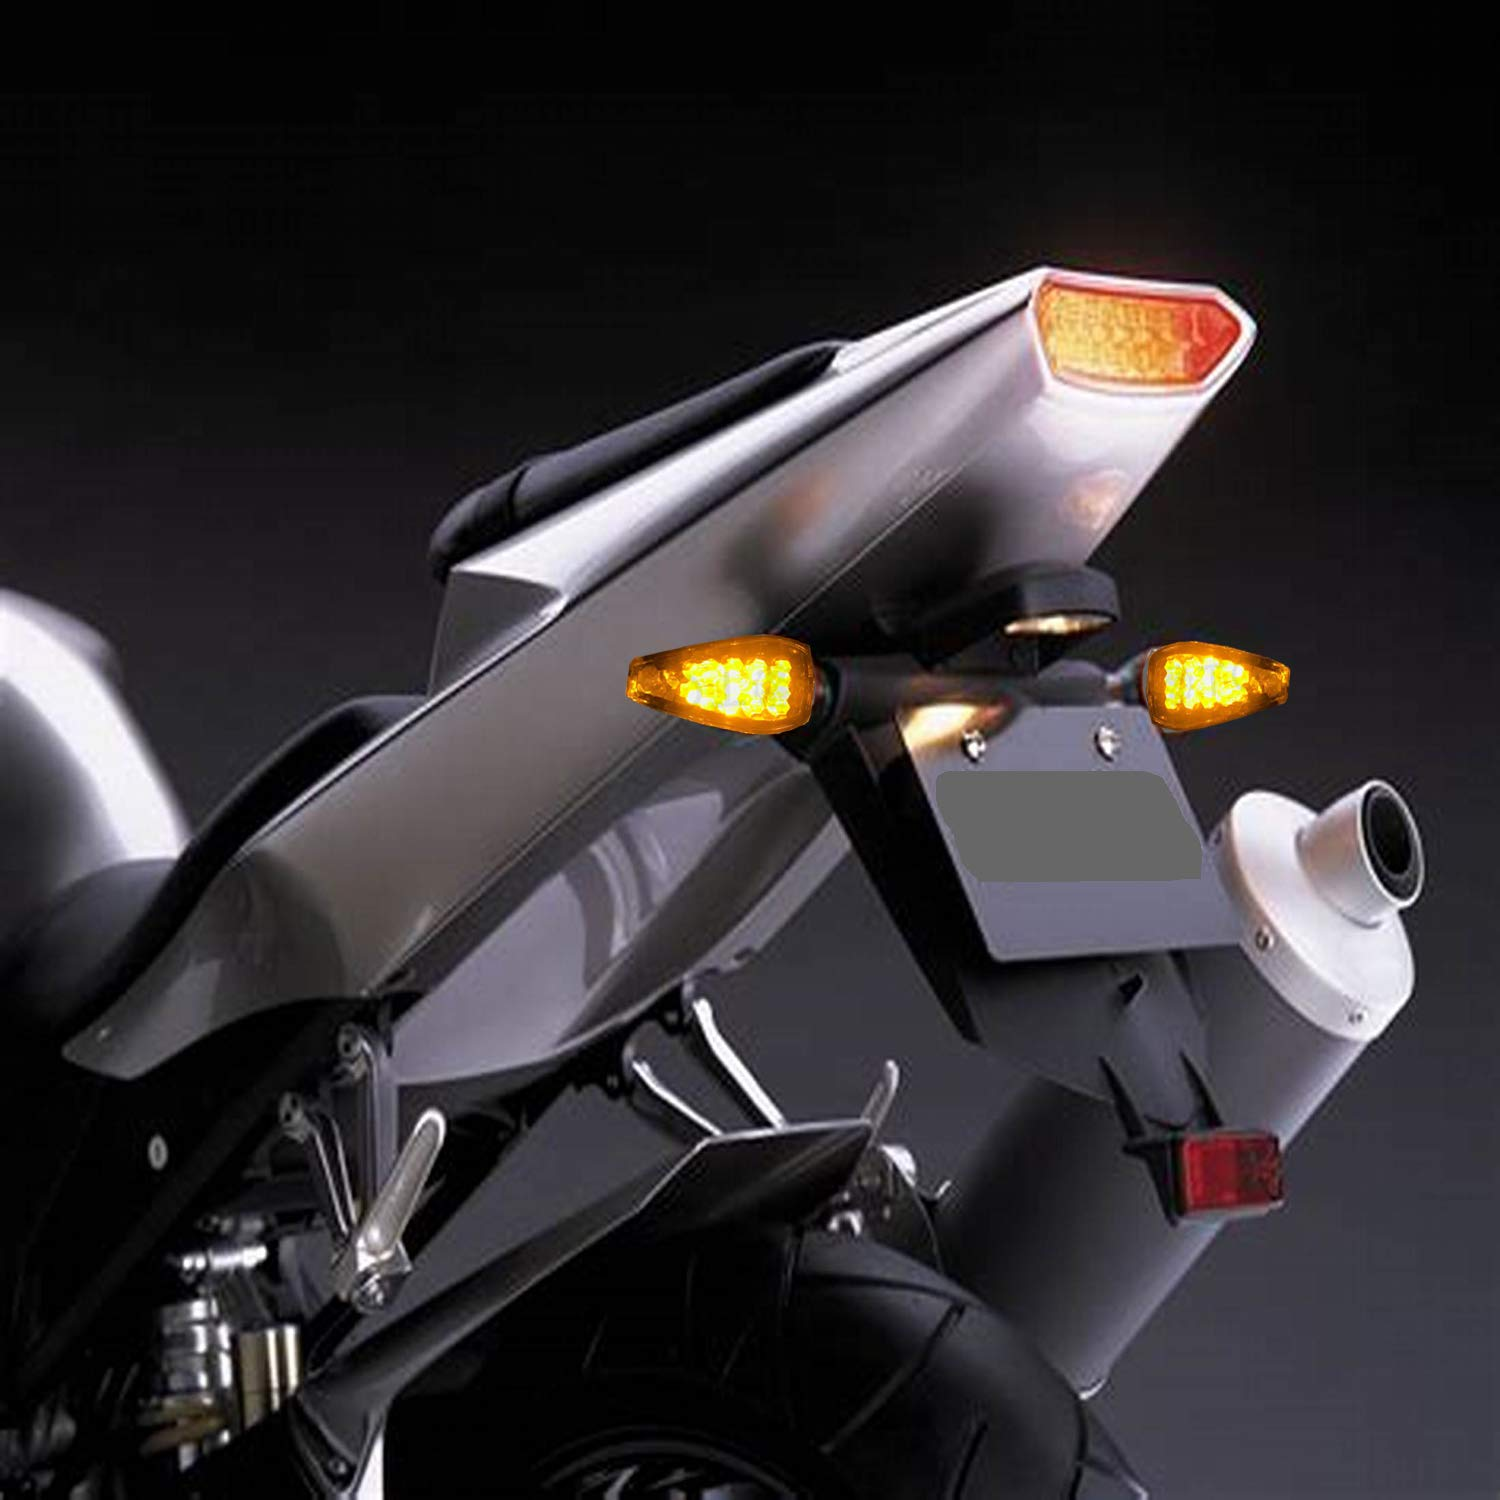 Black Cover CICMOD Motorcycle LED Turn Signals Indicators Blinkers Lights For HARLEY HONDA SUZUKI YAMAHA KAWASAKI